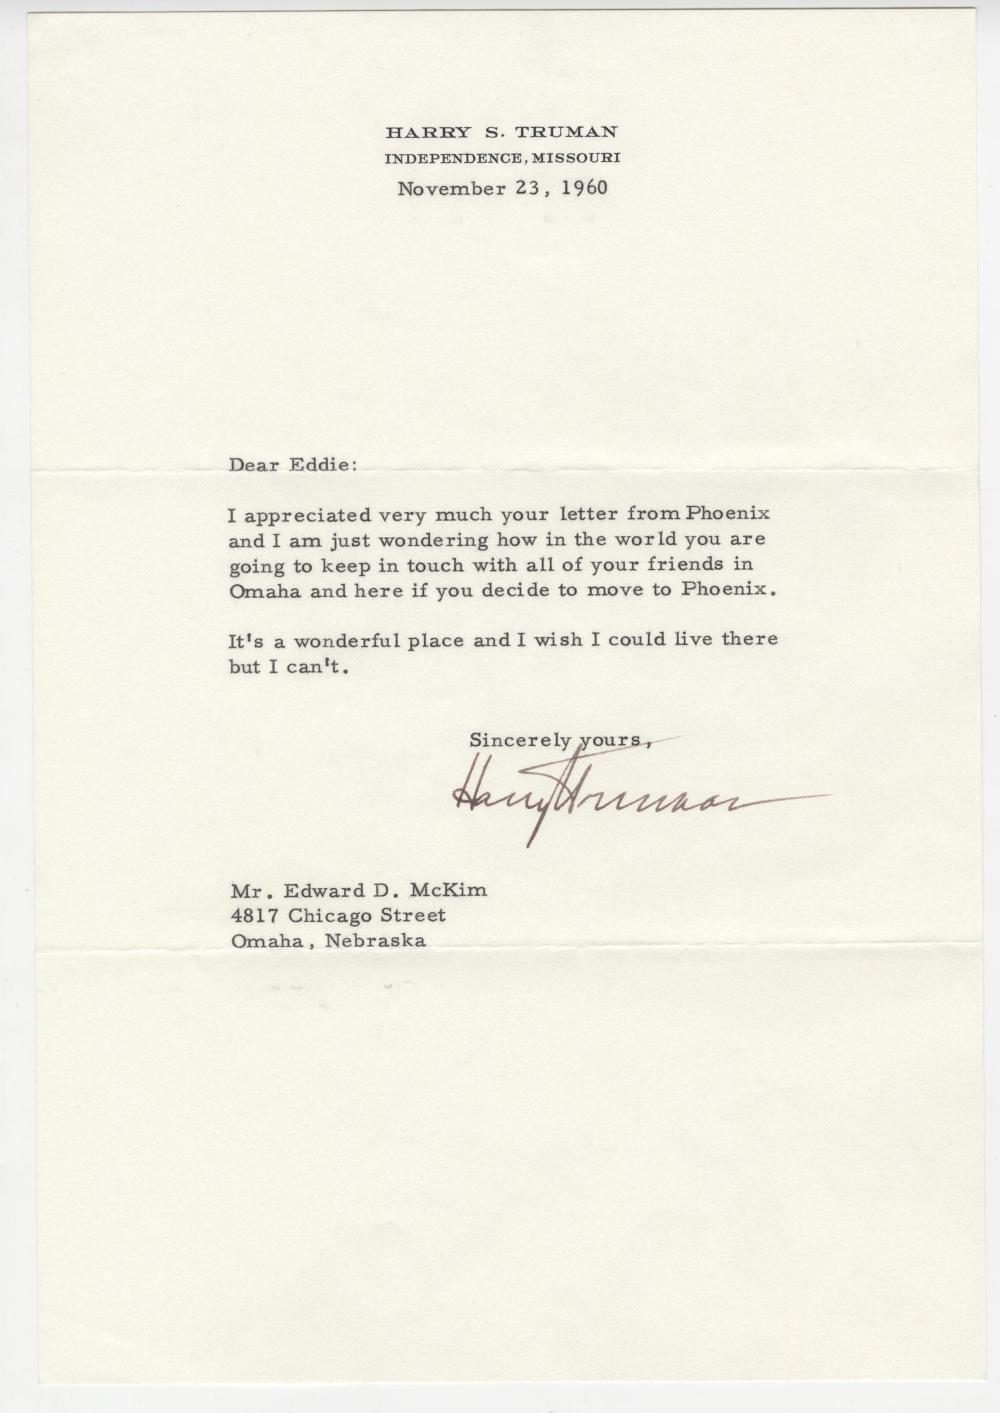 Harry Truman Signed Letter on Life In Phoenix